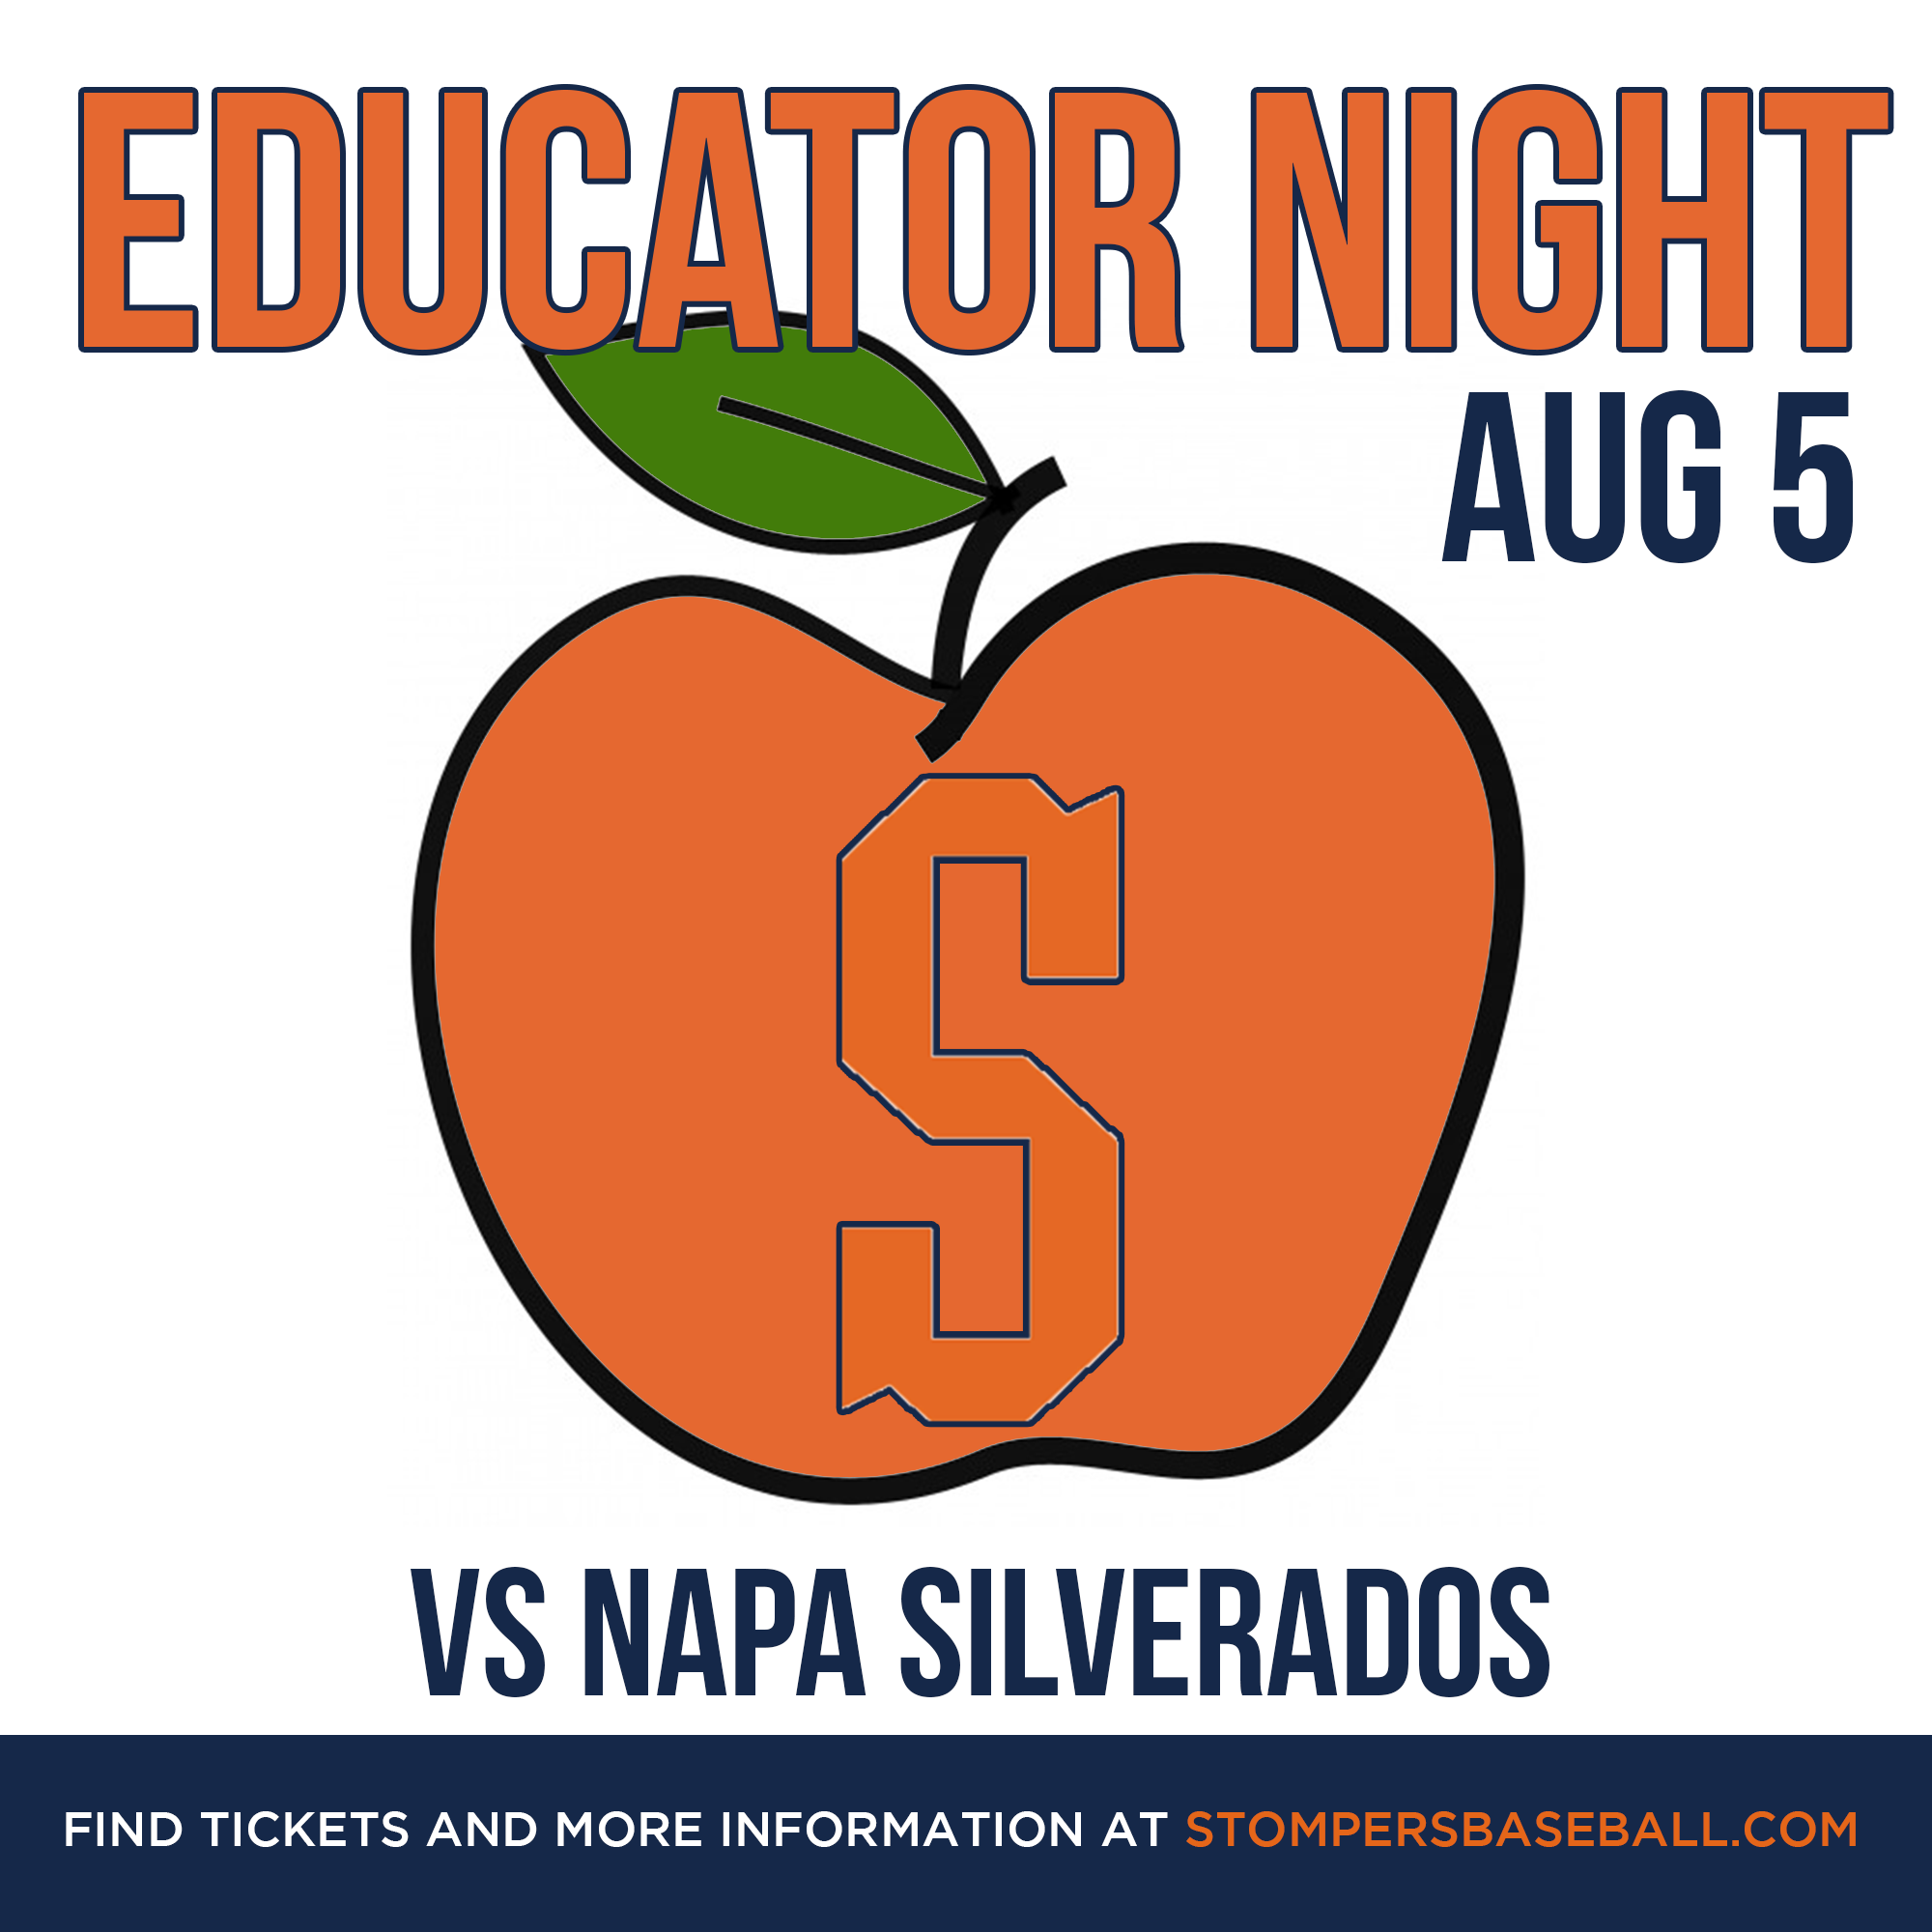 Aug 5: Educator Night - Come out to Palooza Park at Arnold Field and support our local educators in the community!